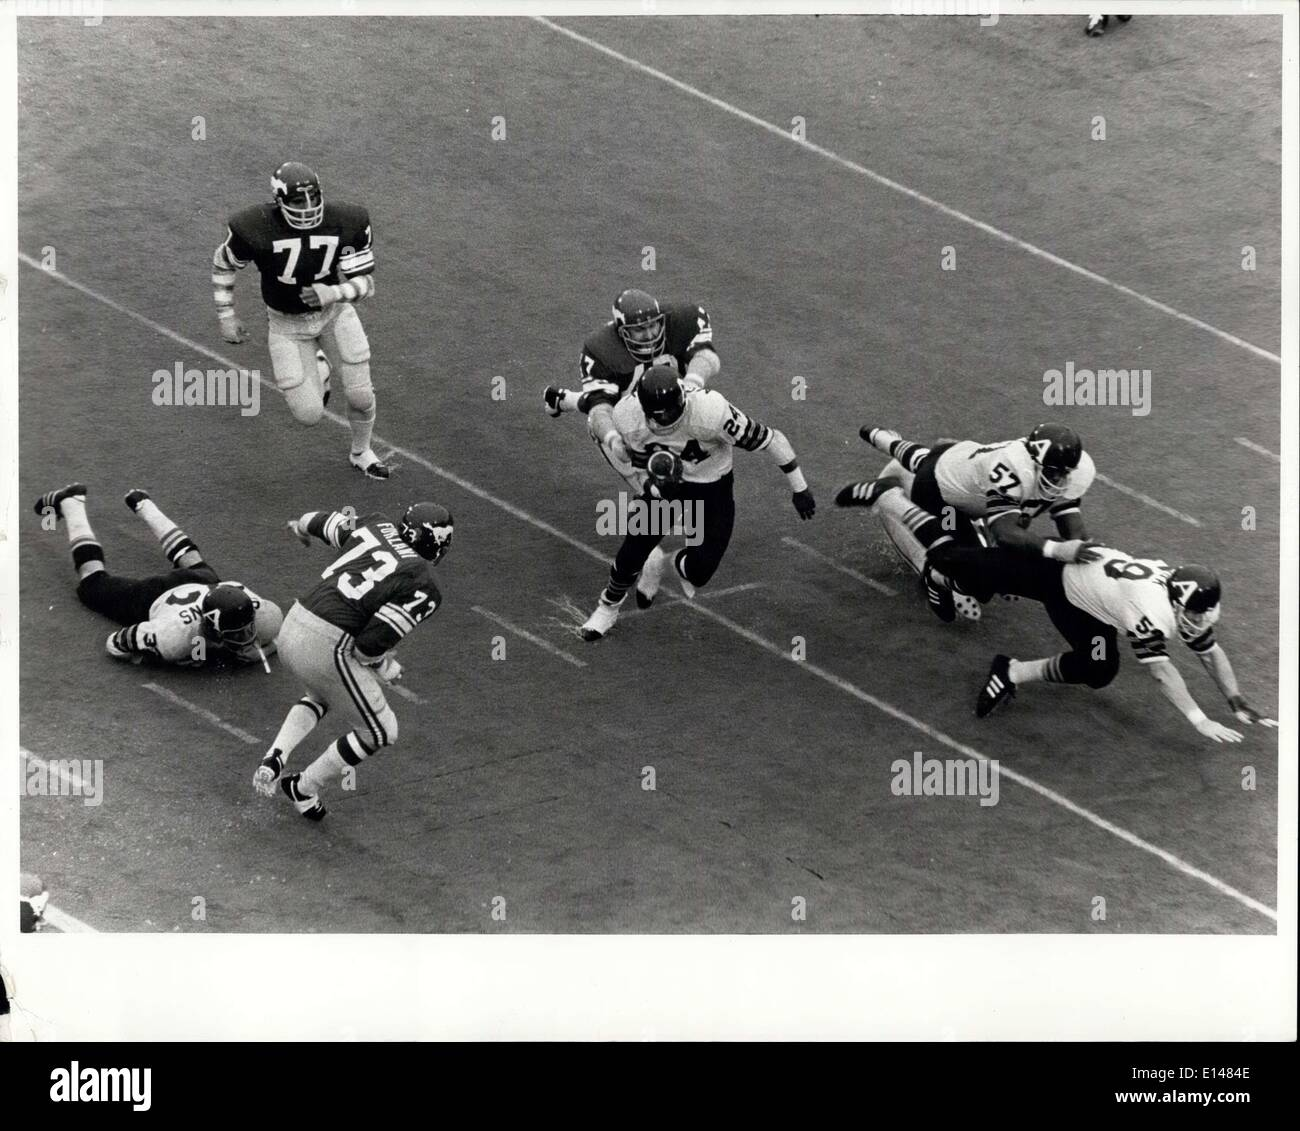 Apr. 17, 2012 - Canada Grey Cup Football Game. 1971. - Stock Image